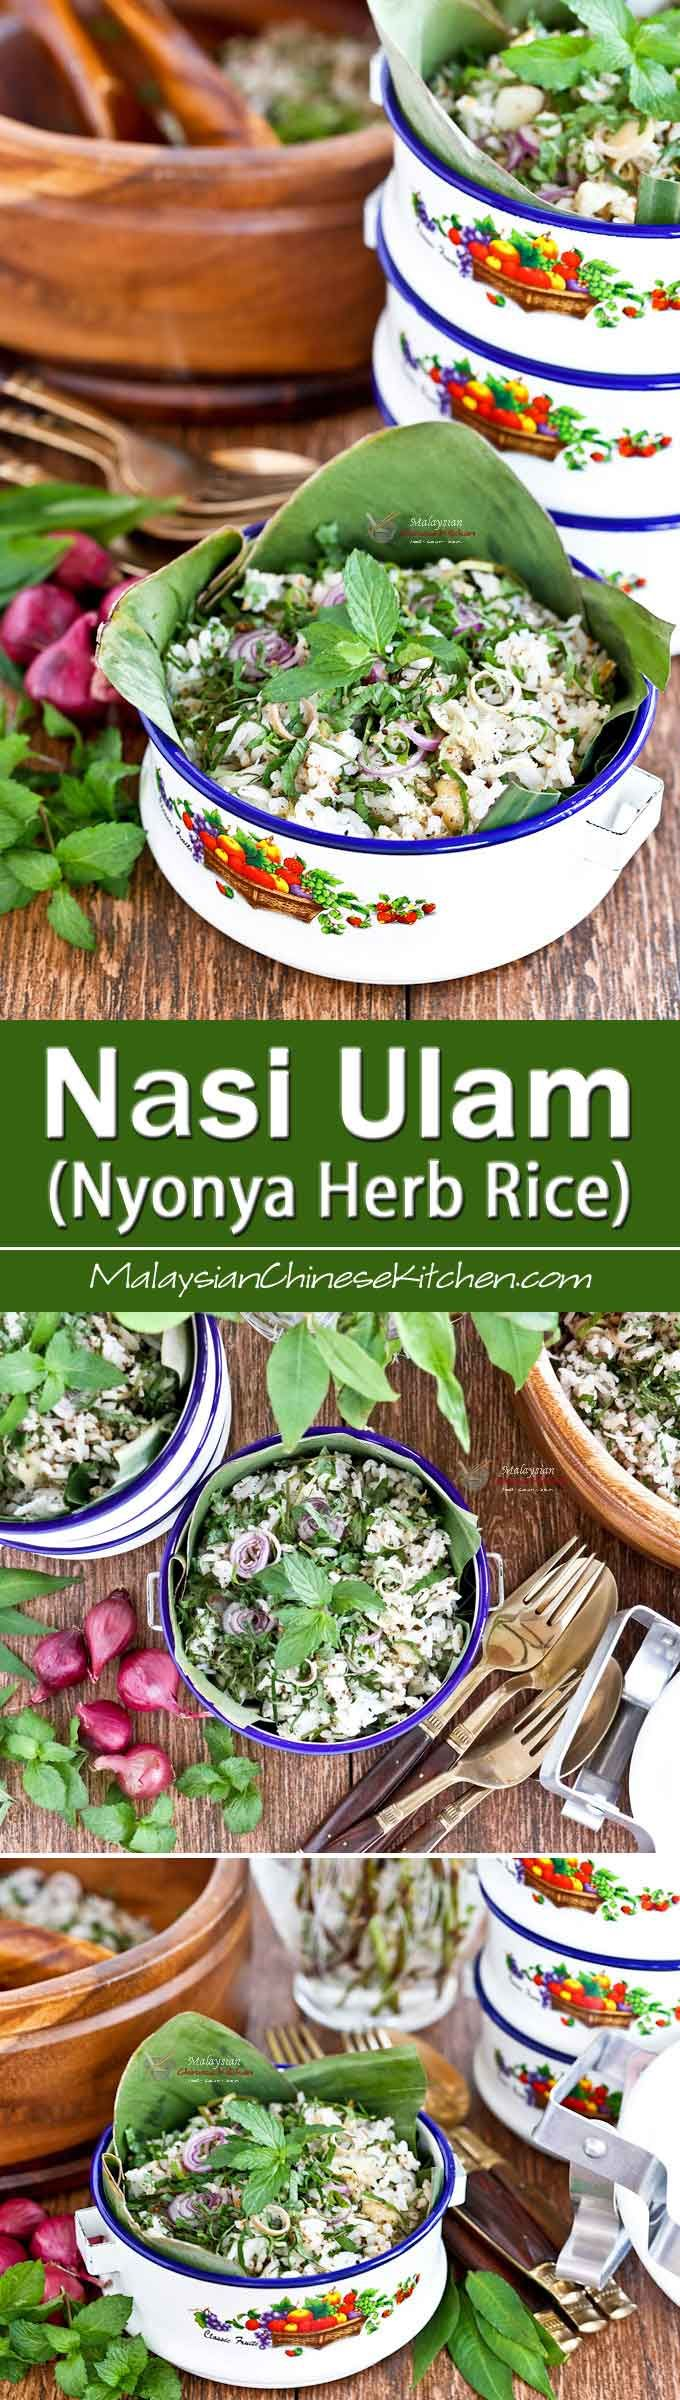 Nasi Ulam - a Nyonya Herb Rice packed with fish flakes, kerisik, and aromatic herbs. Delicious eaten on its own or with other main and side dishes.   MalaysianChineseKitchen.com